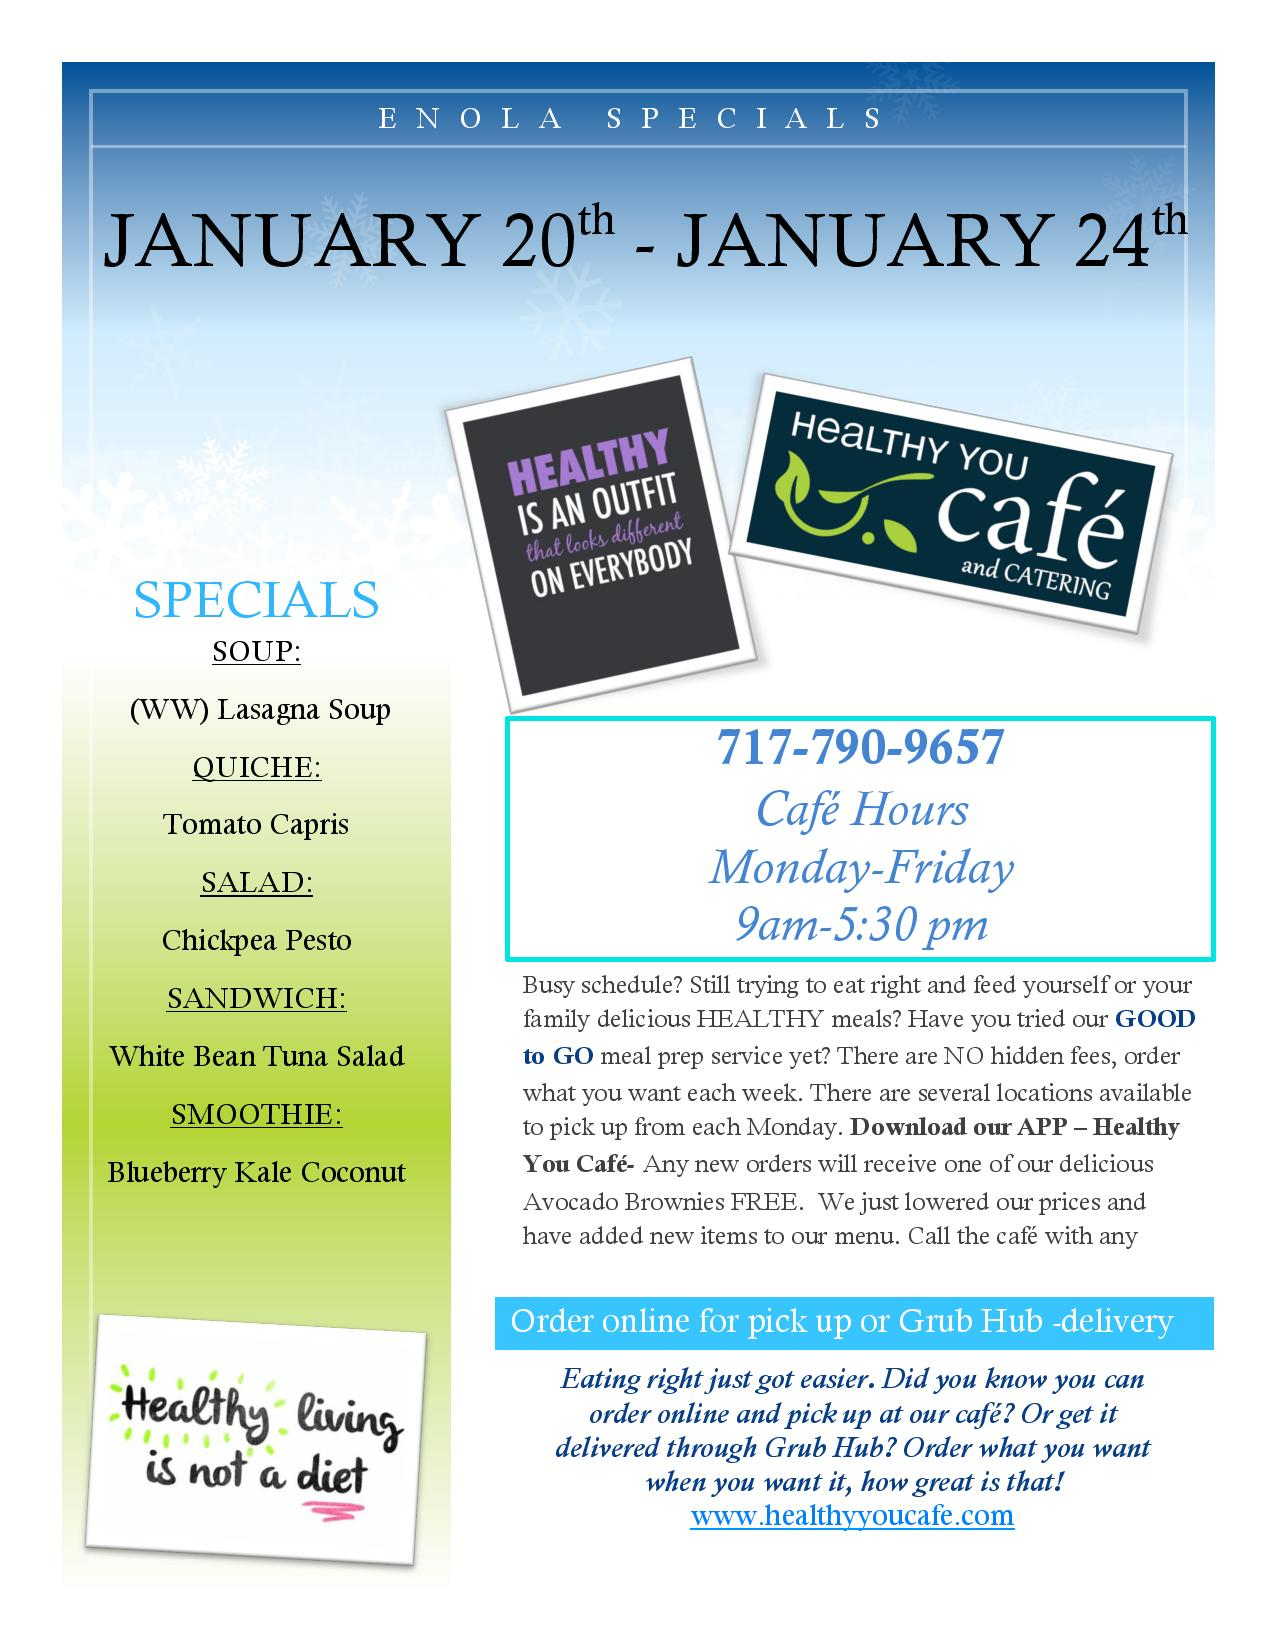 January 20th-January 24th Specials. Readable PDF linked above.